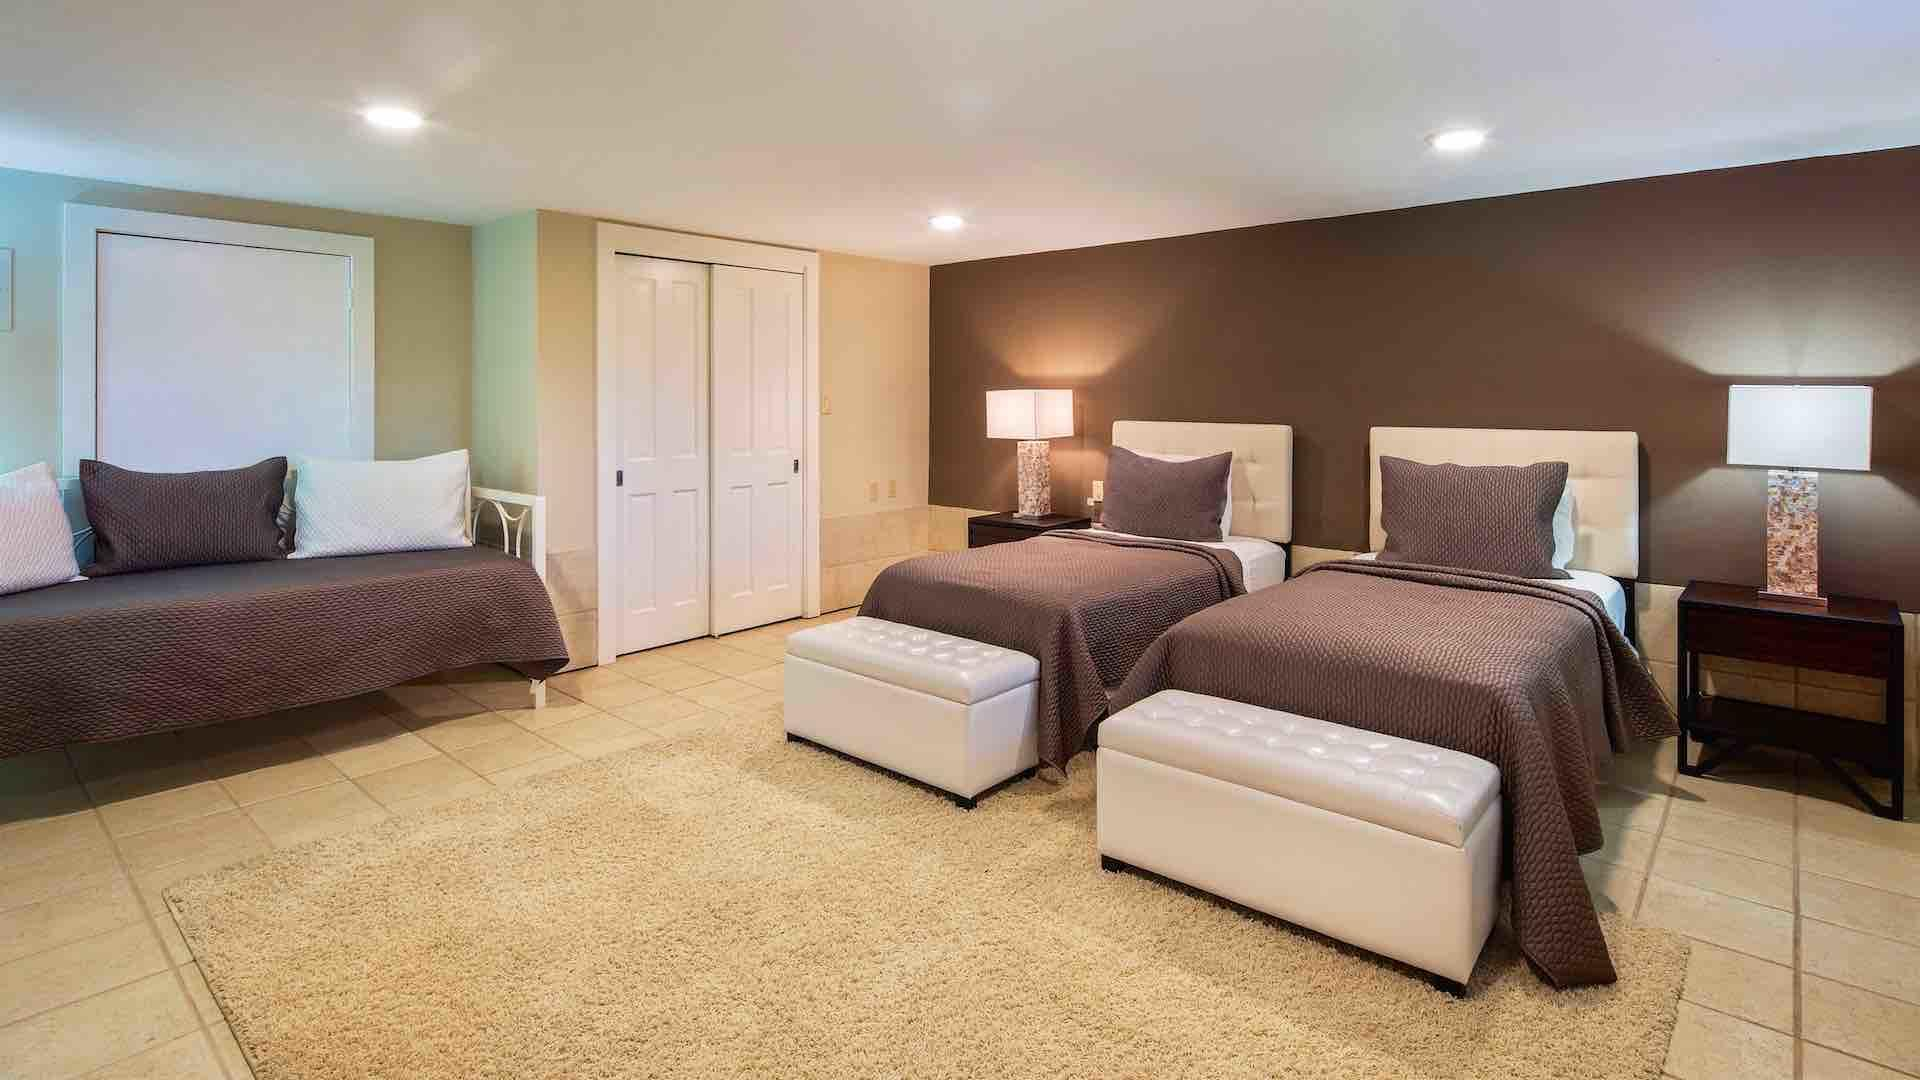 The fourth bedroom has a large closet and extra seating...